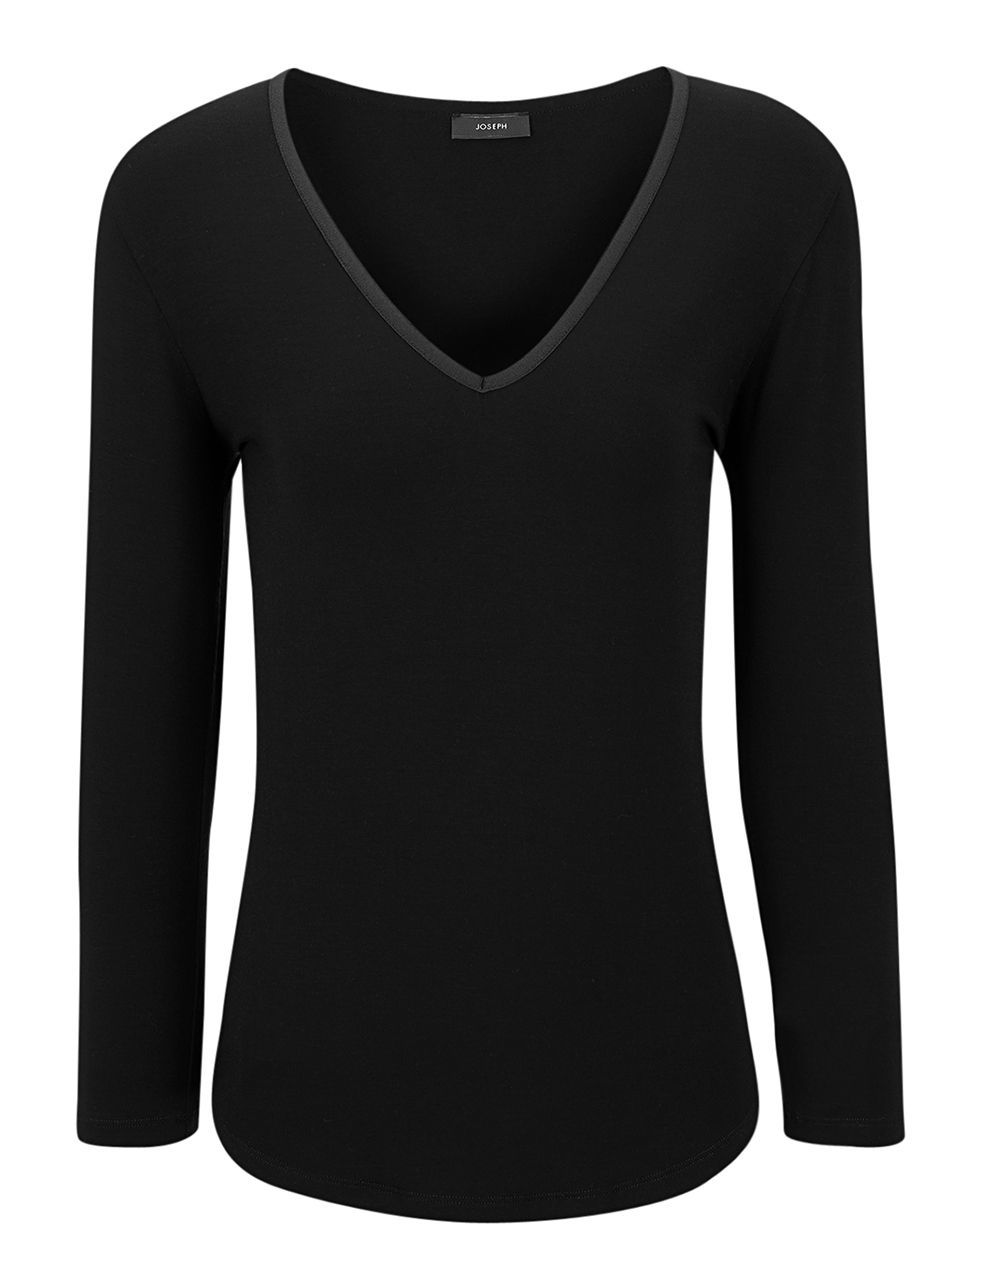 Viscose Stretch V Neck Tee In Black - neckline: low v-neck; pattern: plain; style: t-shirt; predominant colour: black; occasions: casual; length: standard; fibres: polyester/polyamide - stretch; fit: body skimming; sleeve length: long sleeve; sleeve style: standard; pattern type: fabric; texture group: jersey - stretchy/drapey; season: a/w 2015